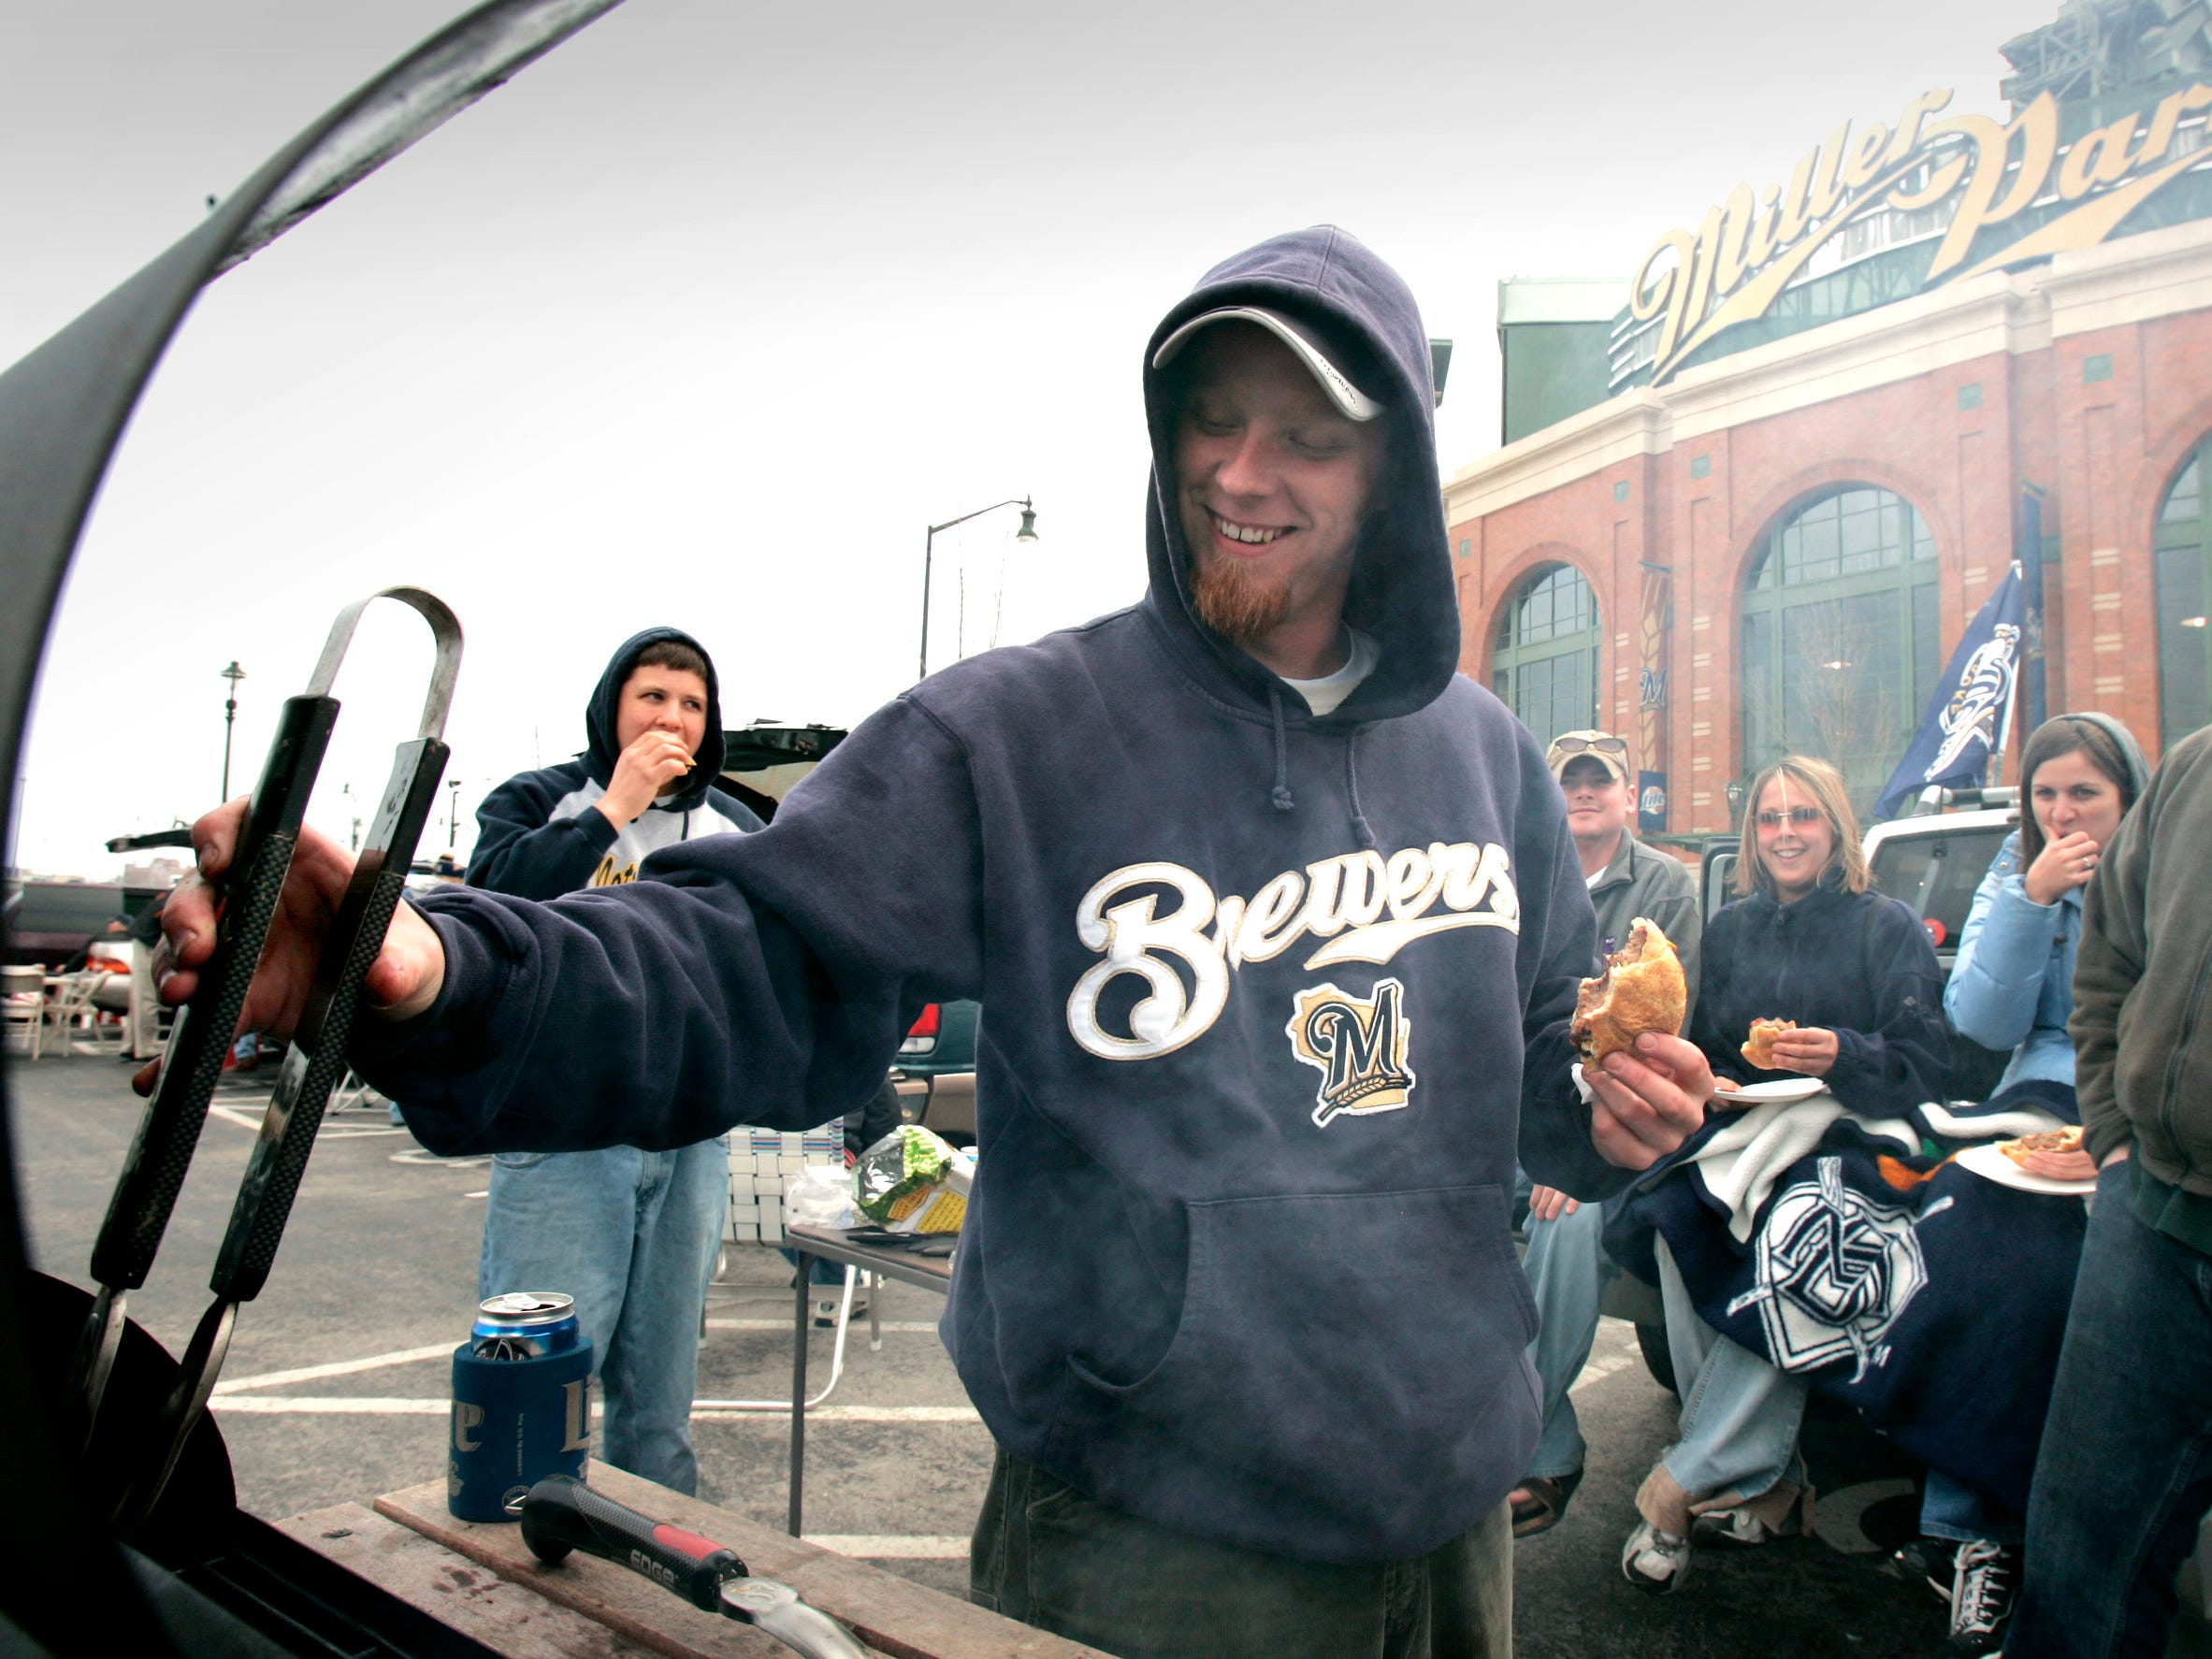 Milwaukee Brewers fan Ryan VandeWalle of Green Bay tailgates before the home opener April 11, 2005, at Miller Park. The Brewers beat the Pittsburgh Pirates, 6-2, in the opener.